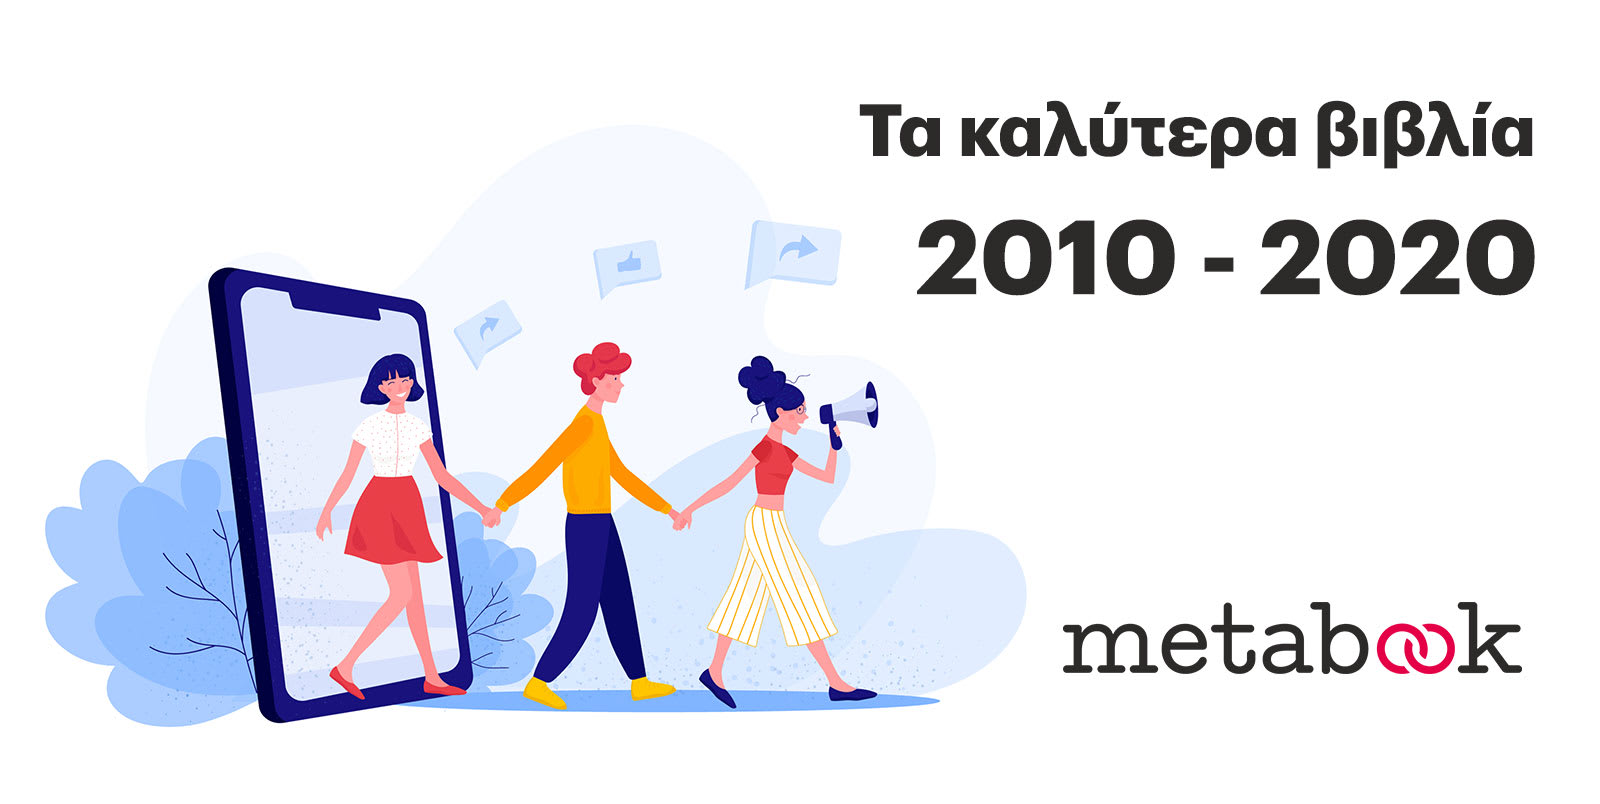 Τα καλύτερα βιβλία του 2010-2020